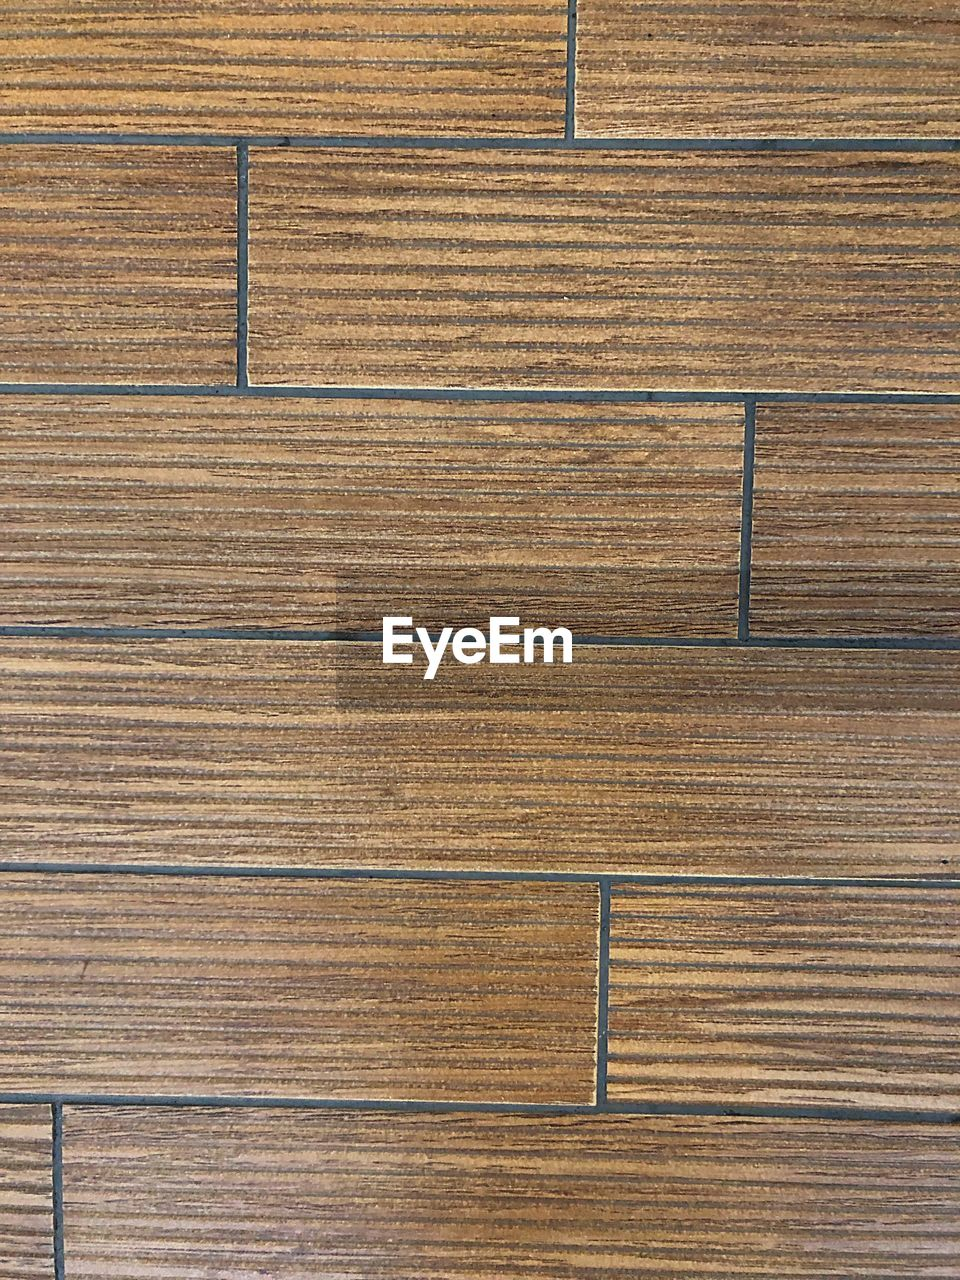 backgrounds, wood - material, pattern, full frame, textured, wood, brown, no people, wood grain, flooring, indoors, plank, high angle view, hardwood floor, close-up, day, directly above, floorboard, design, parquet floor